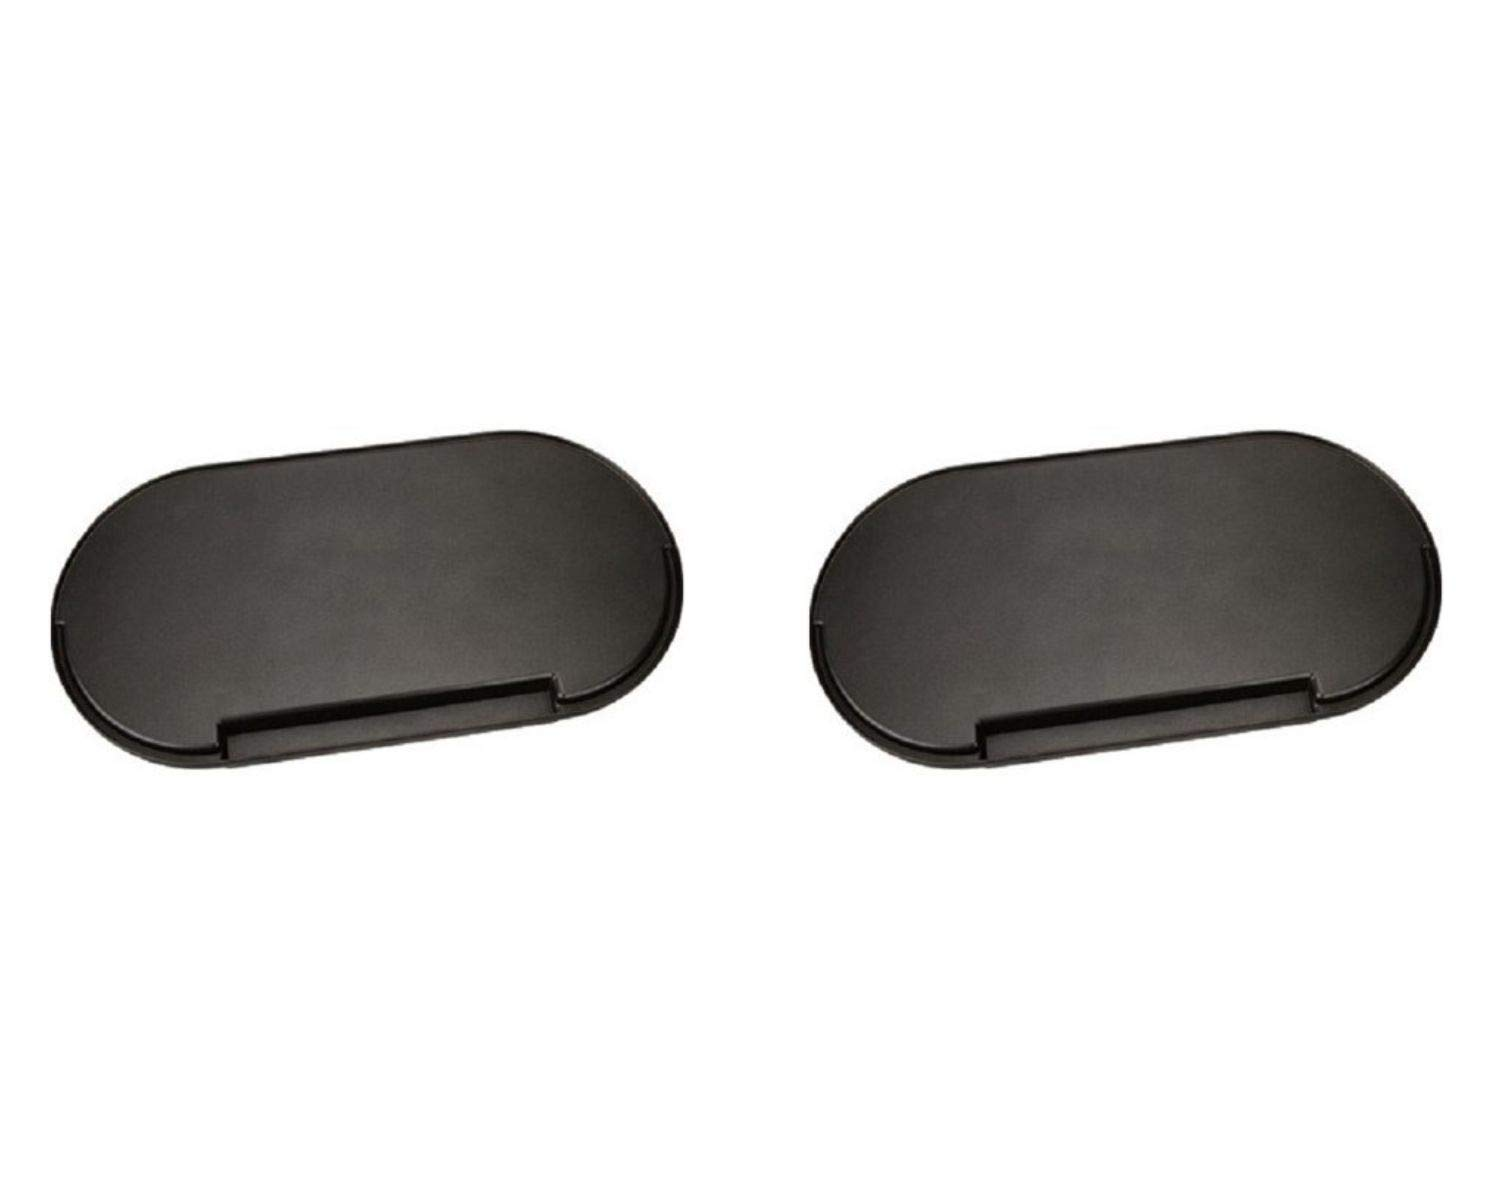 Coleman Roadtrip Swaptop Aluminum Grill Griddle, Full Size (2 Set, Griddle) by Coleman